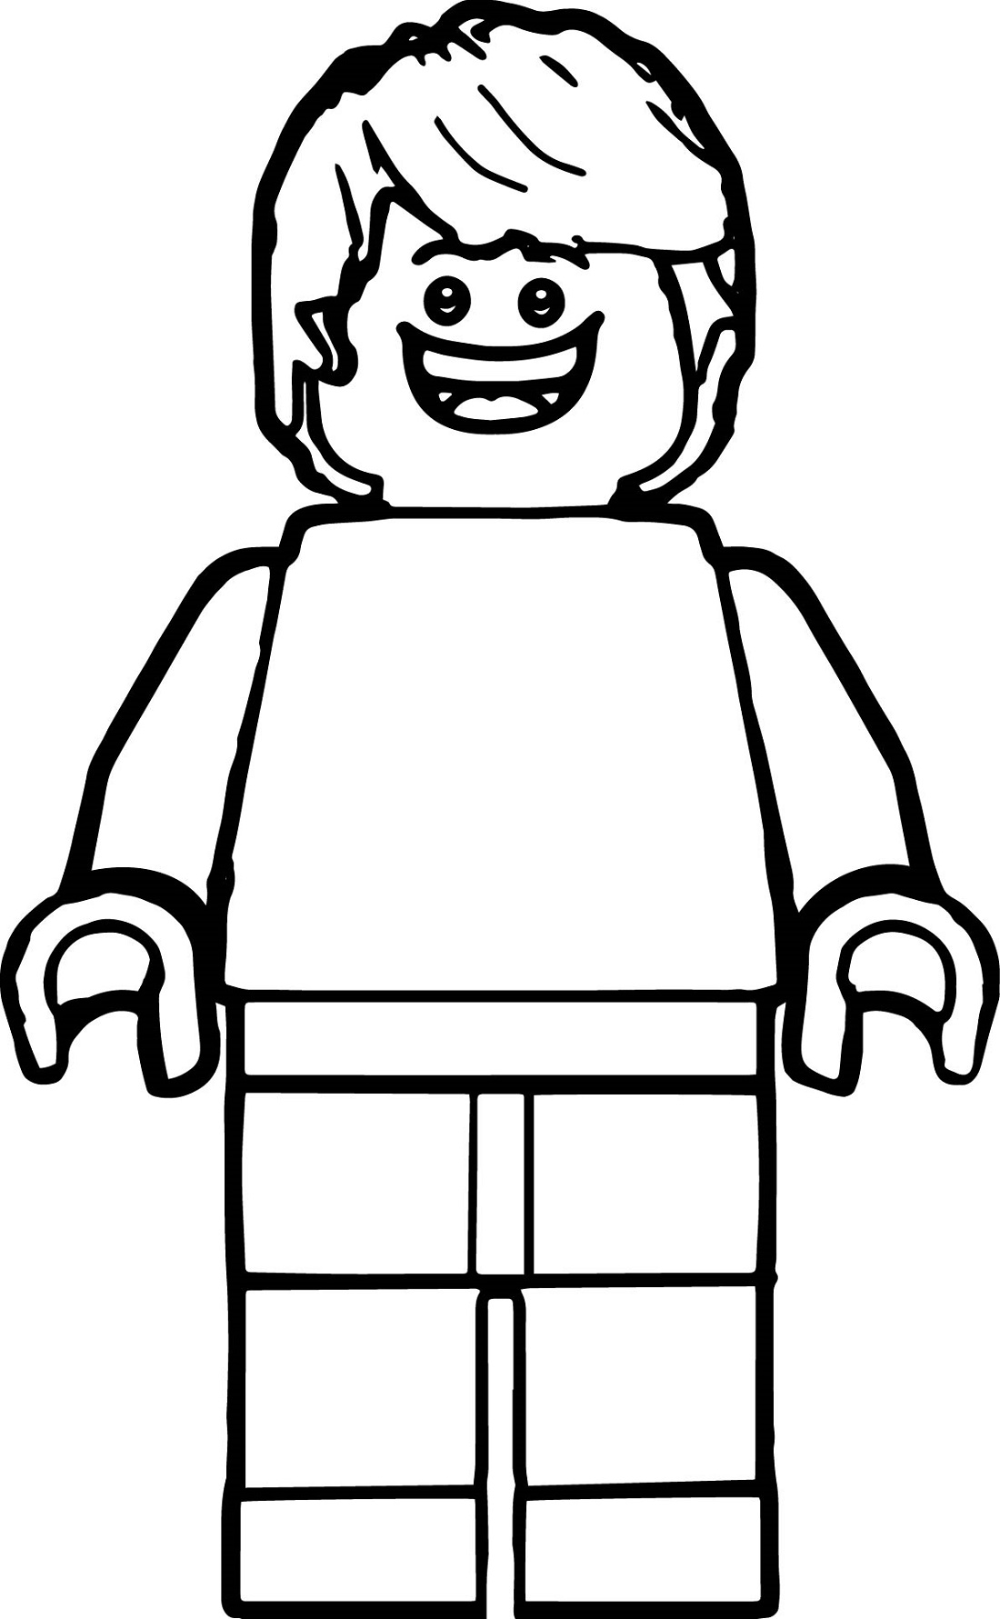 Lego Man Coloring Page  Lego coloring pages, Lego coloring, Lego